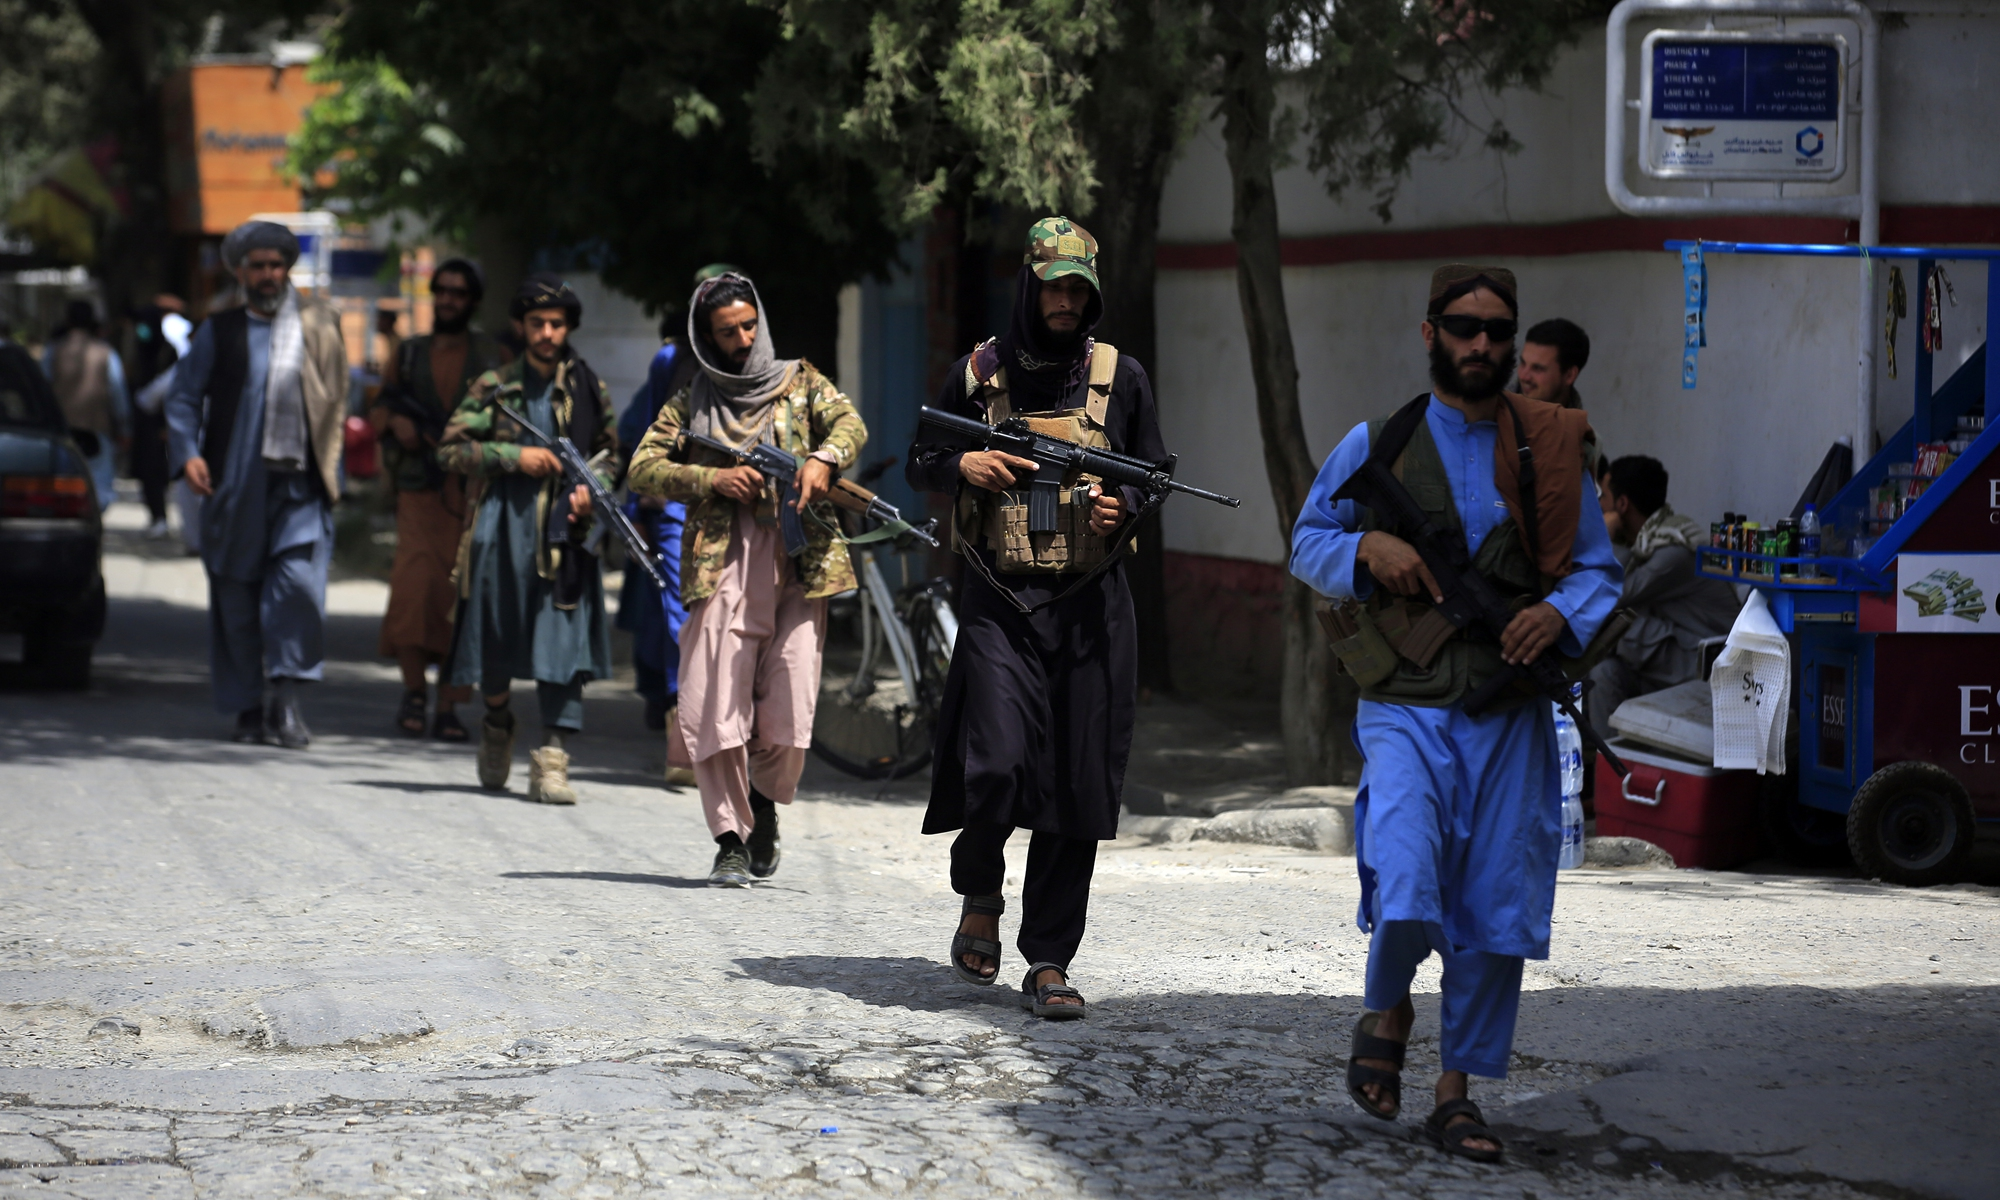 Taliban fighters patrol in the Wazir Akbar Khan neighborhood in the city of Kabul, Afghanistan on Wednesday. The Taliban declared an